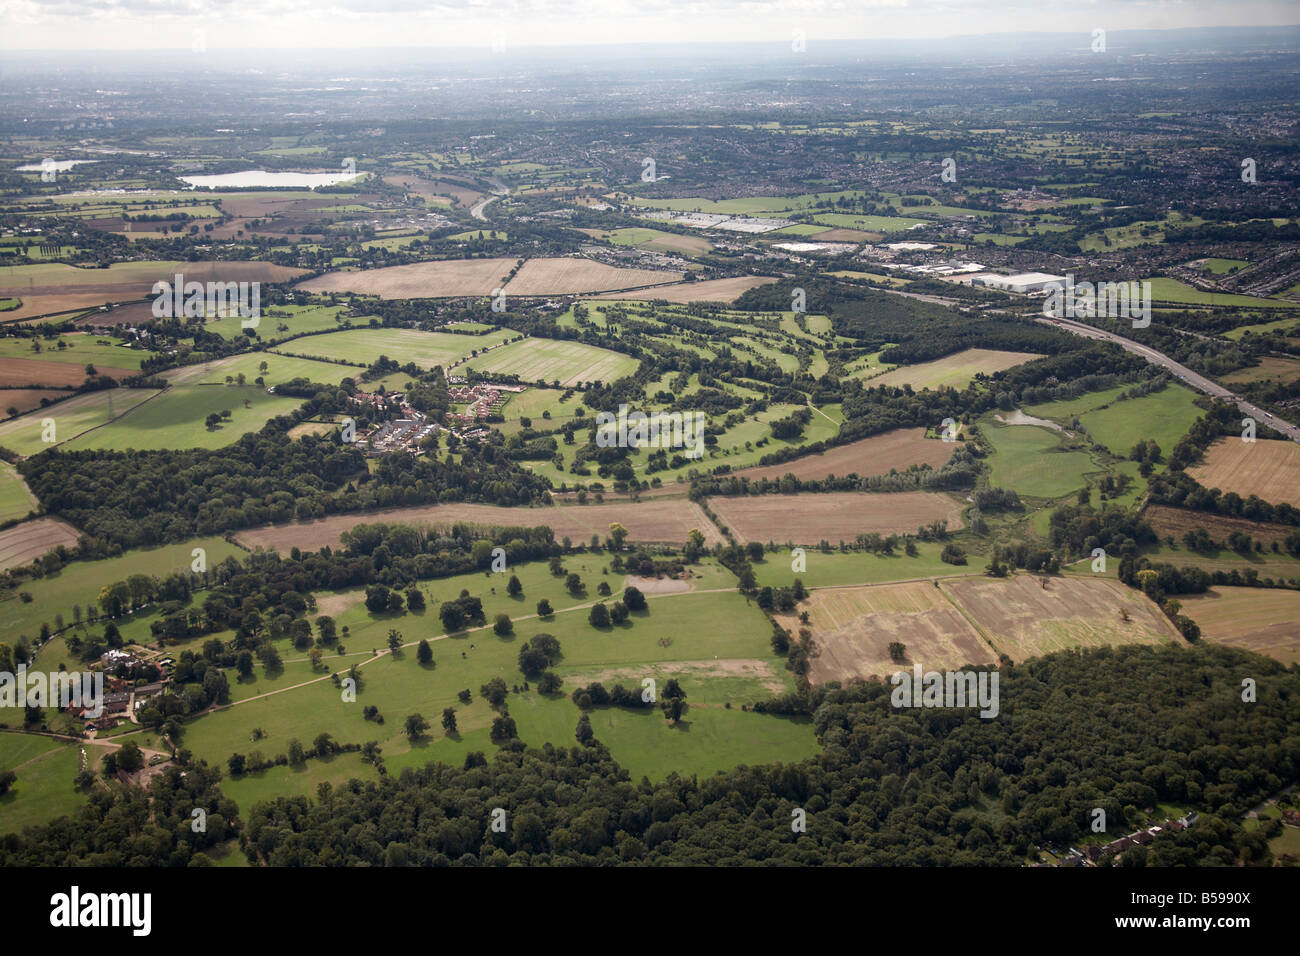 Aerial view south west of M1 Motorway country fields Aldenham Watford Hertsmere Greater London WD2 England UK High - Stock Image